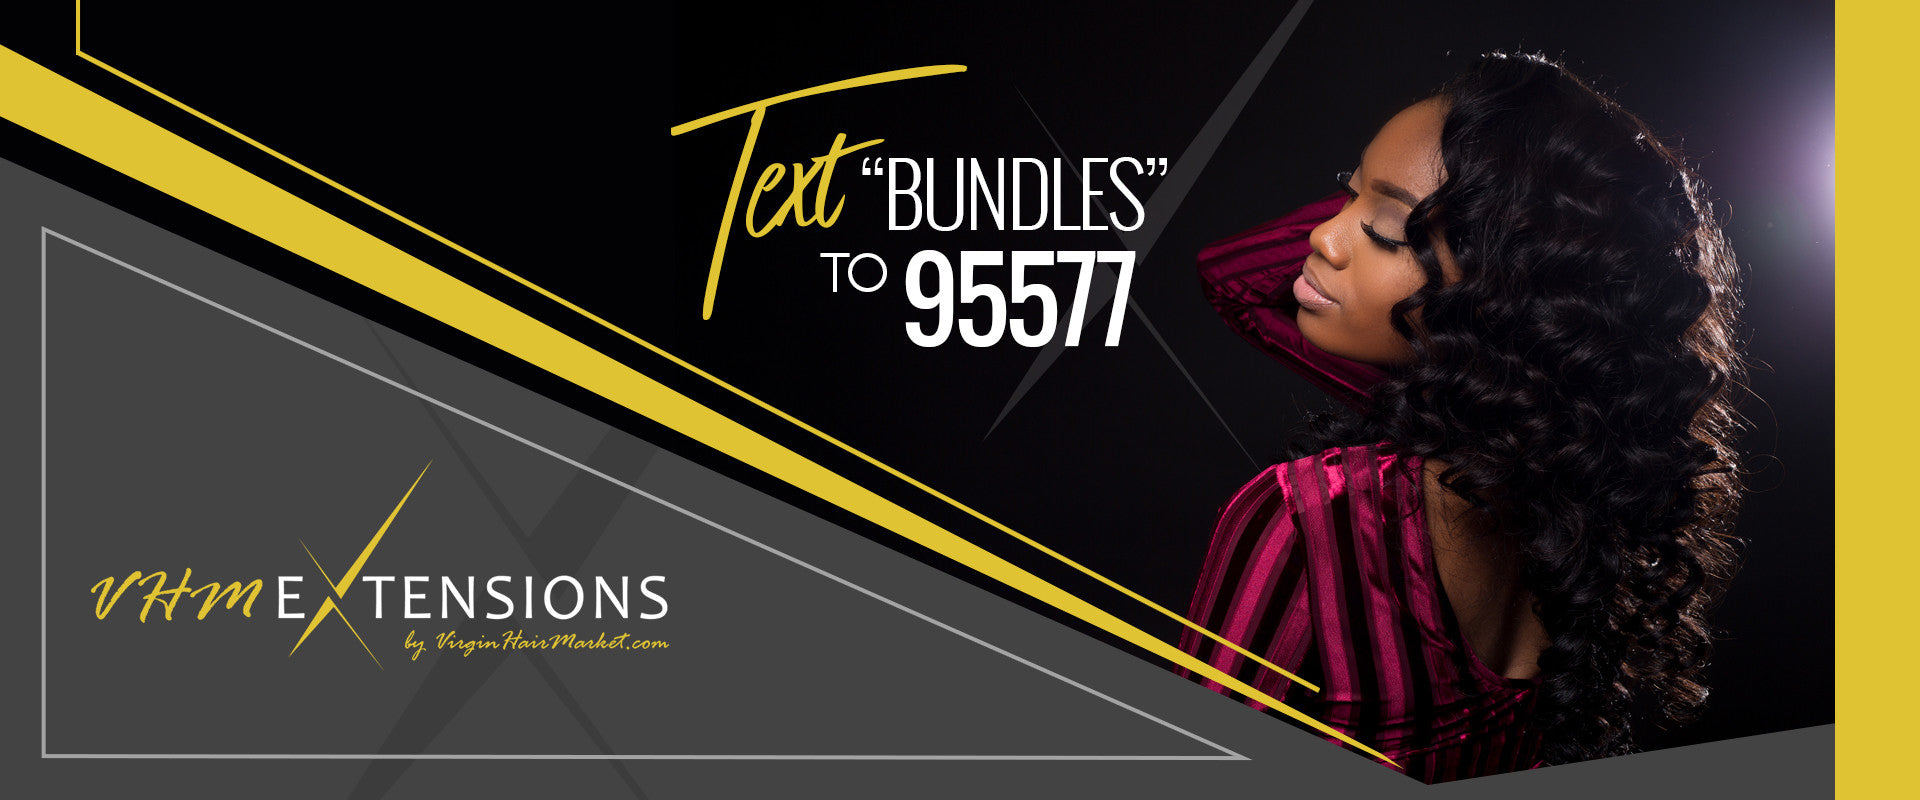 Text Bundles to 95577